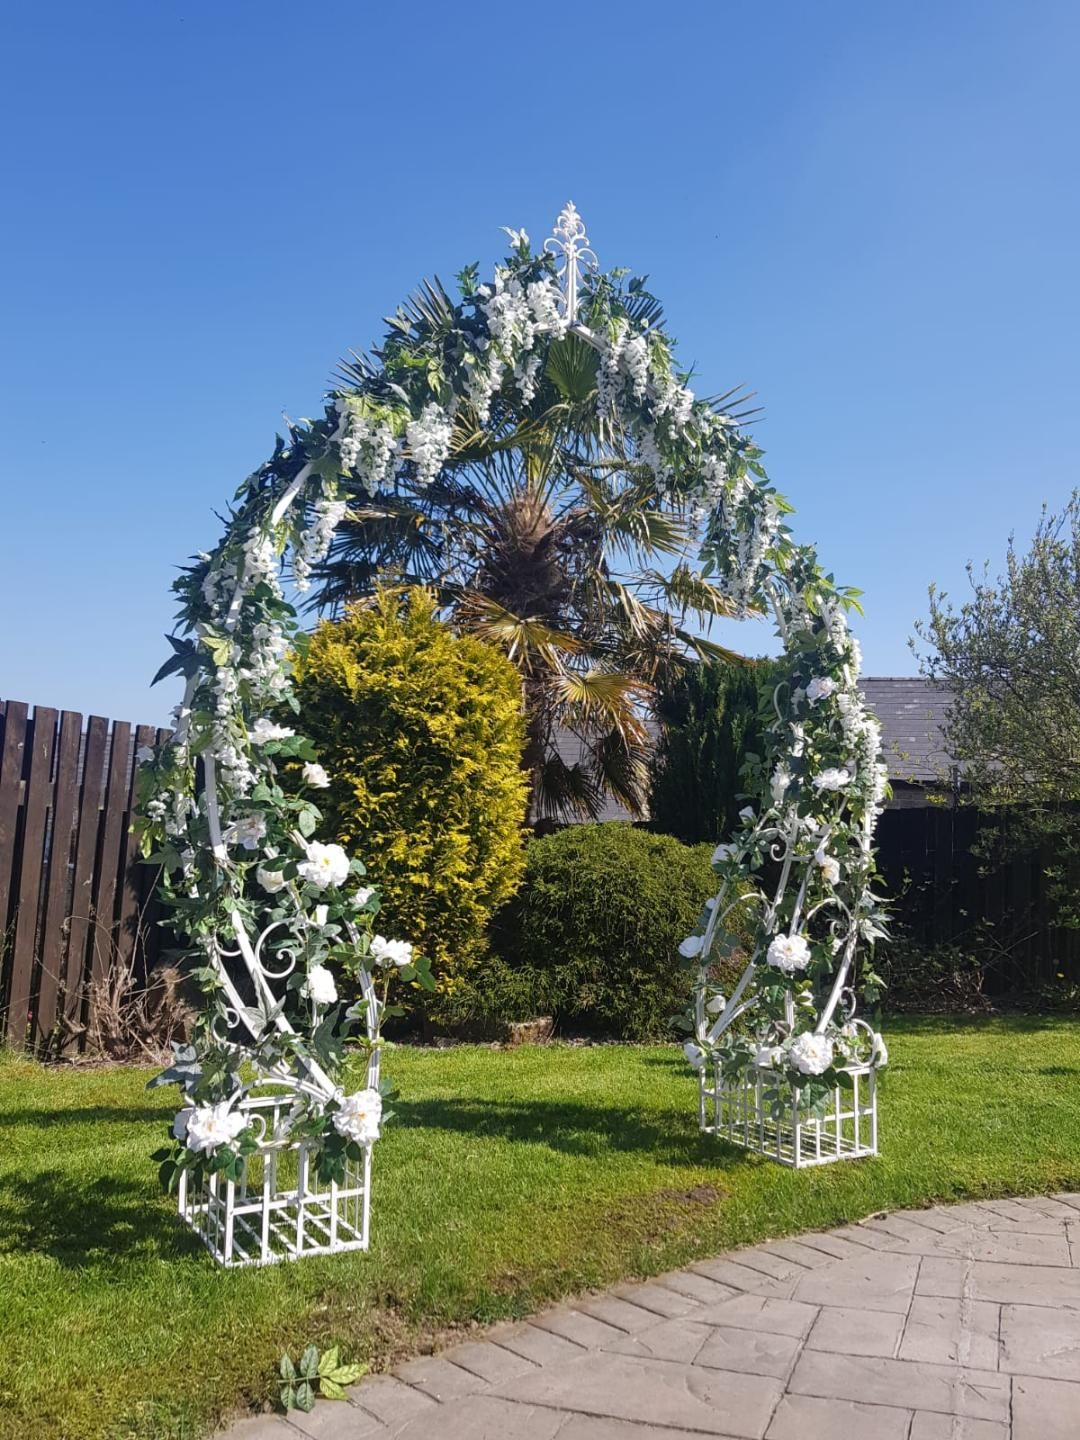 Flower Arch displayed in Garden